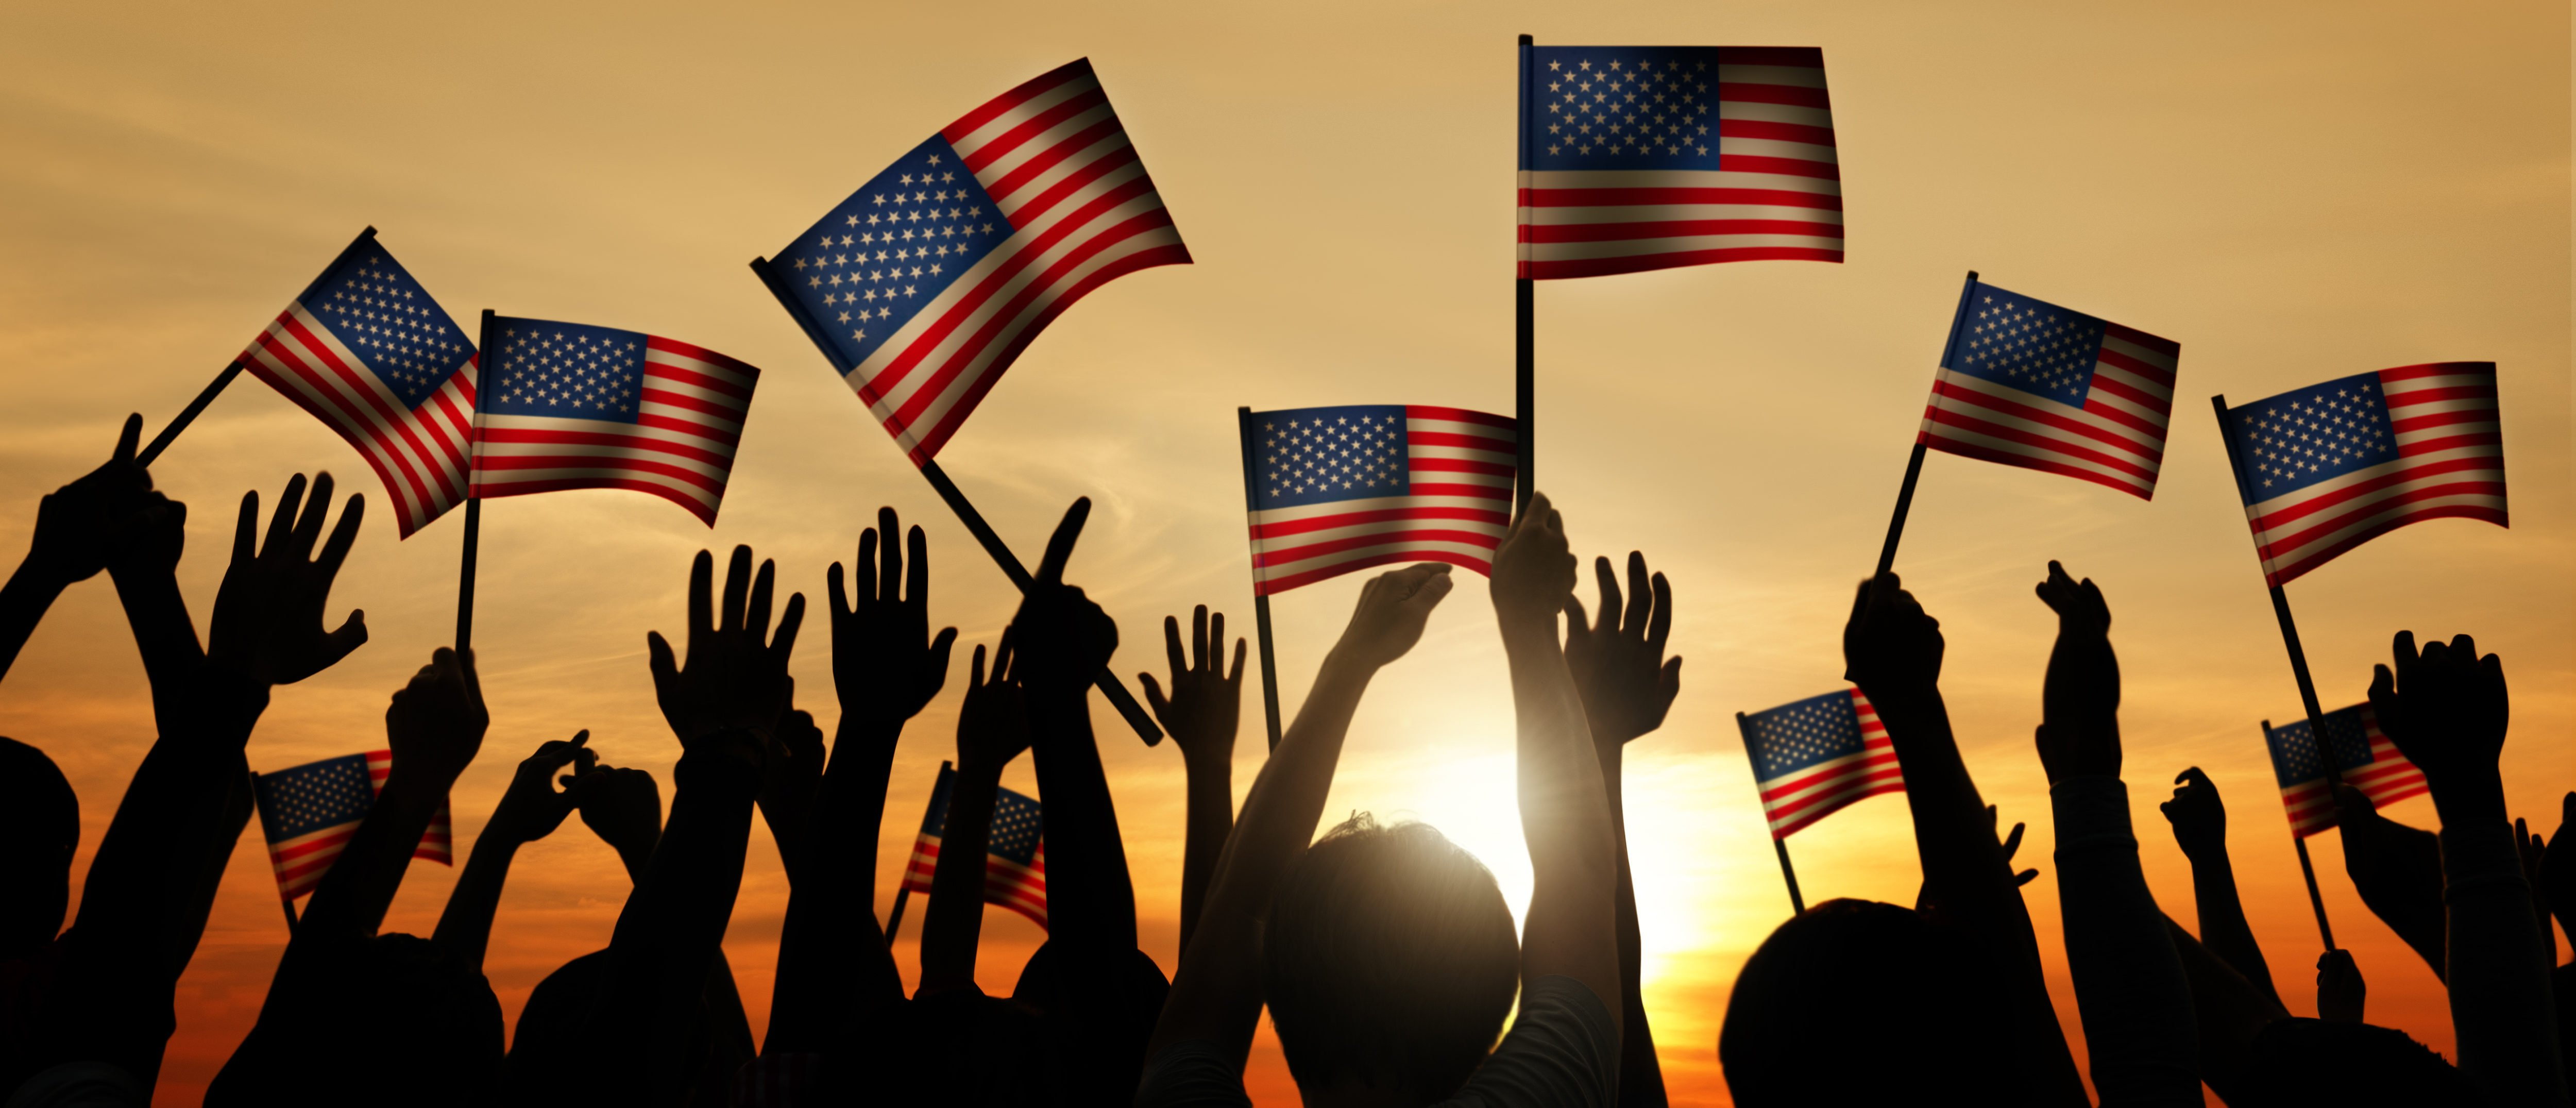 Group of People Waving American Flags in Back Lit. Shutterstock